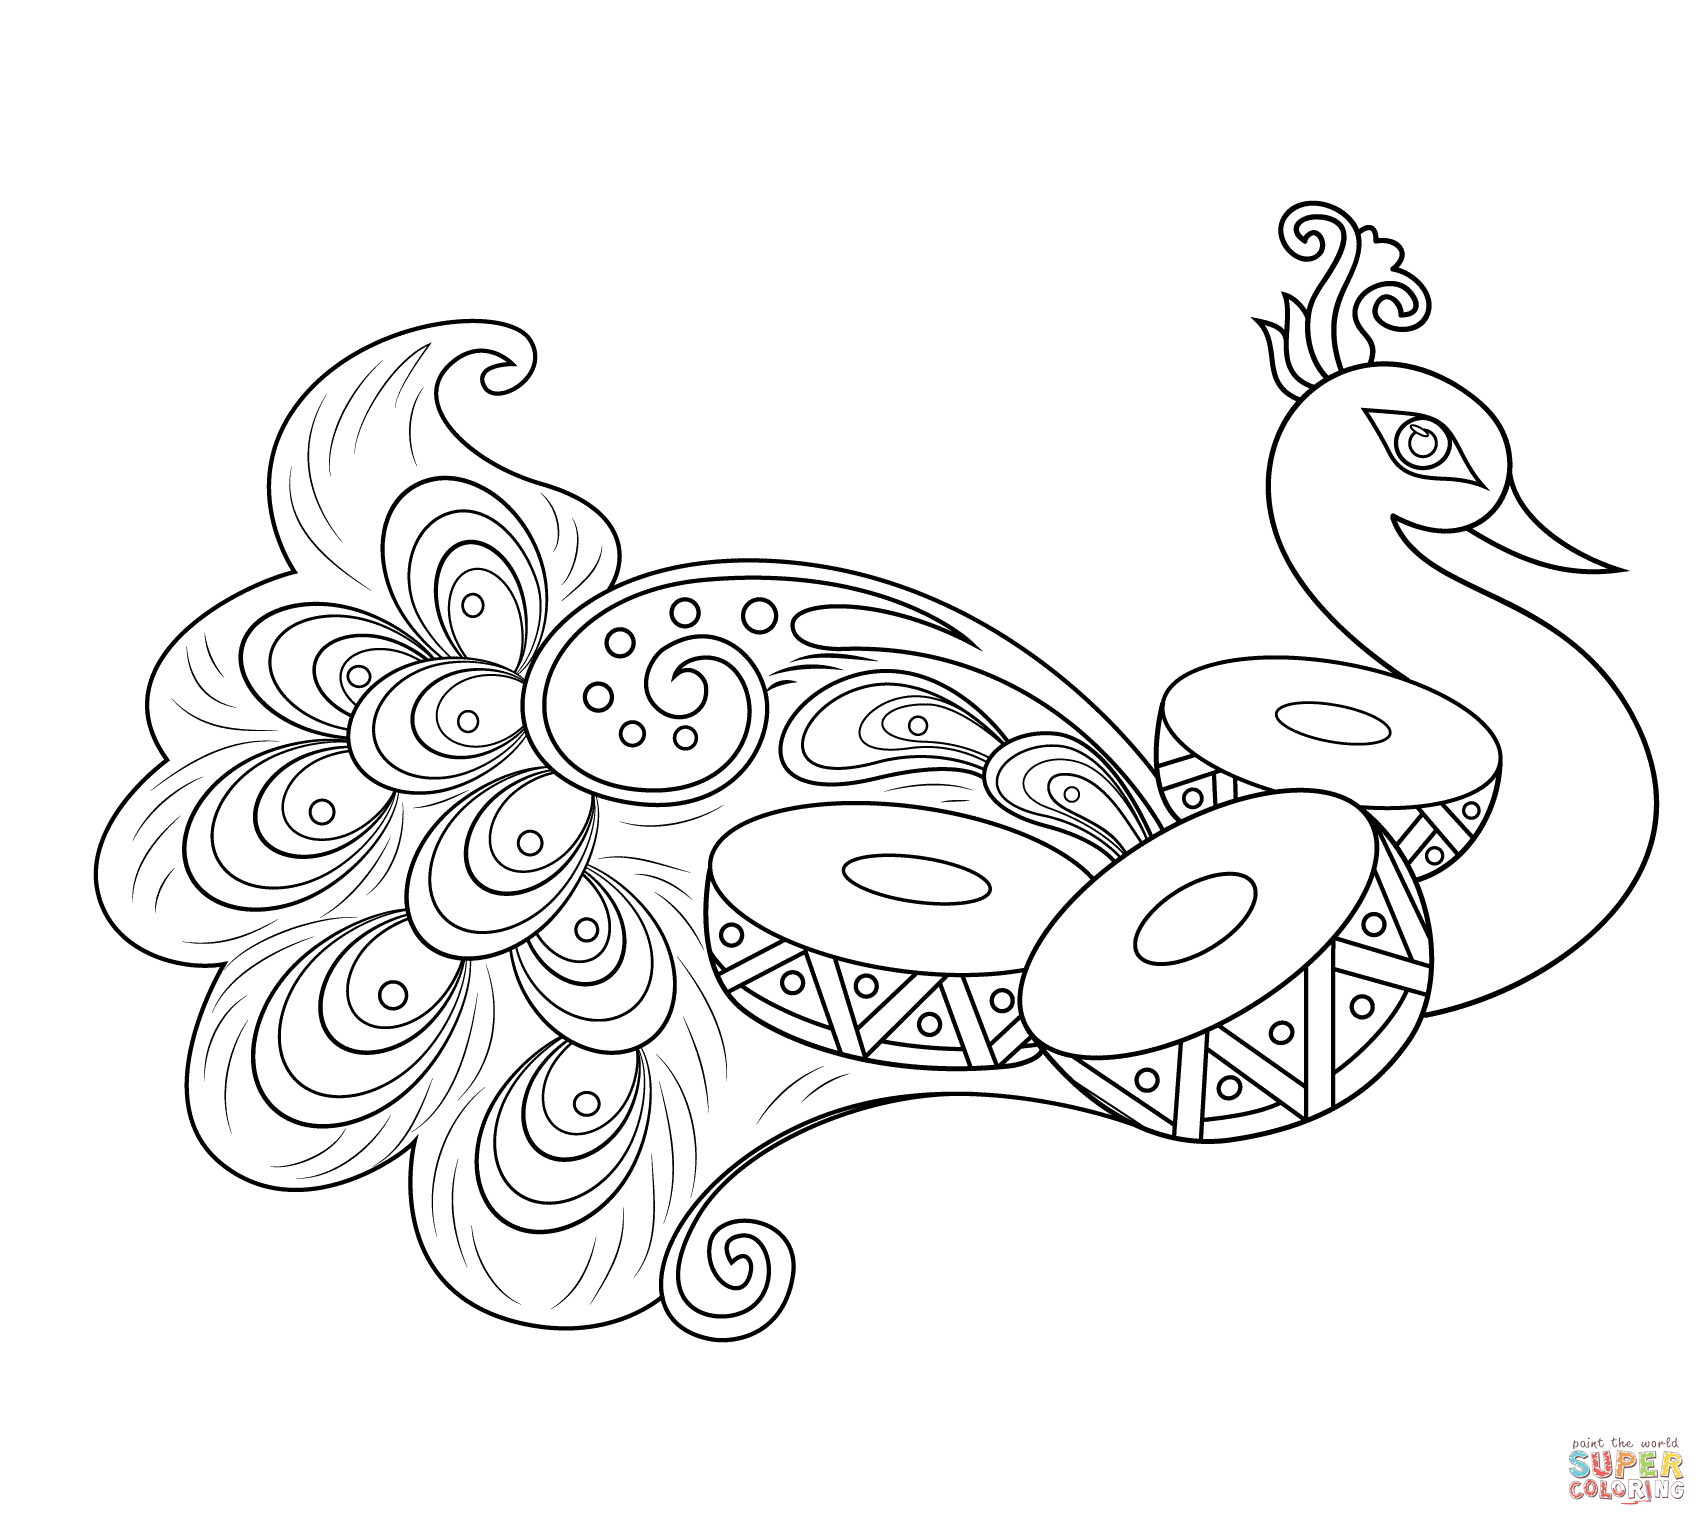 Free coloring pages of peacock feathers coloring everyday printable - Rangoli With Peacock Coloring Page From Rangoli Category Select From 25105 Printable Crafts Of Cartoons Nature Animals Bible And Many More